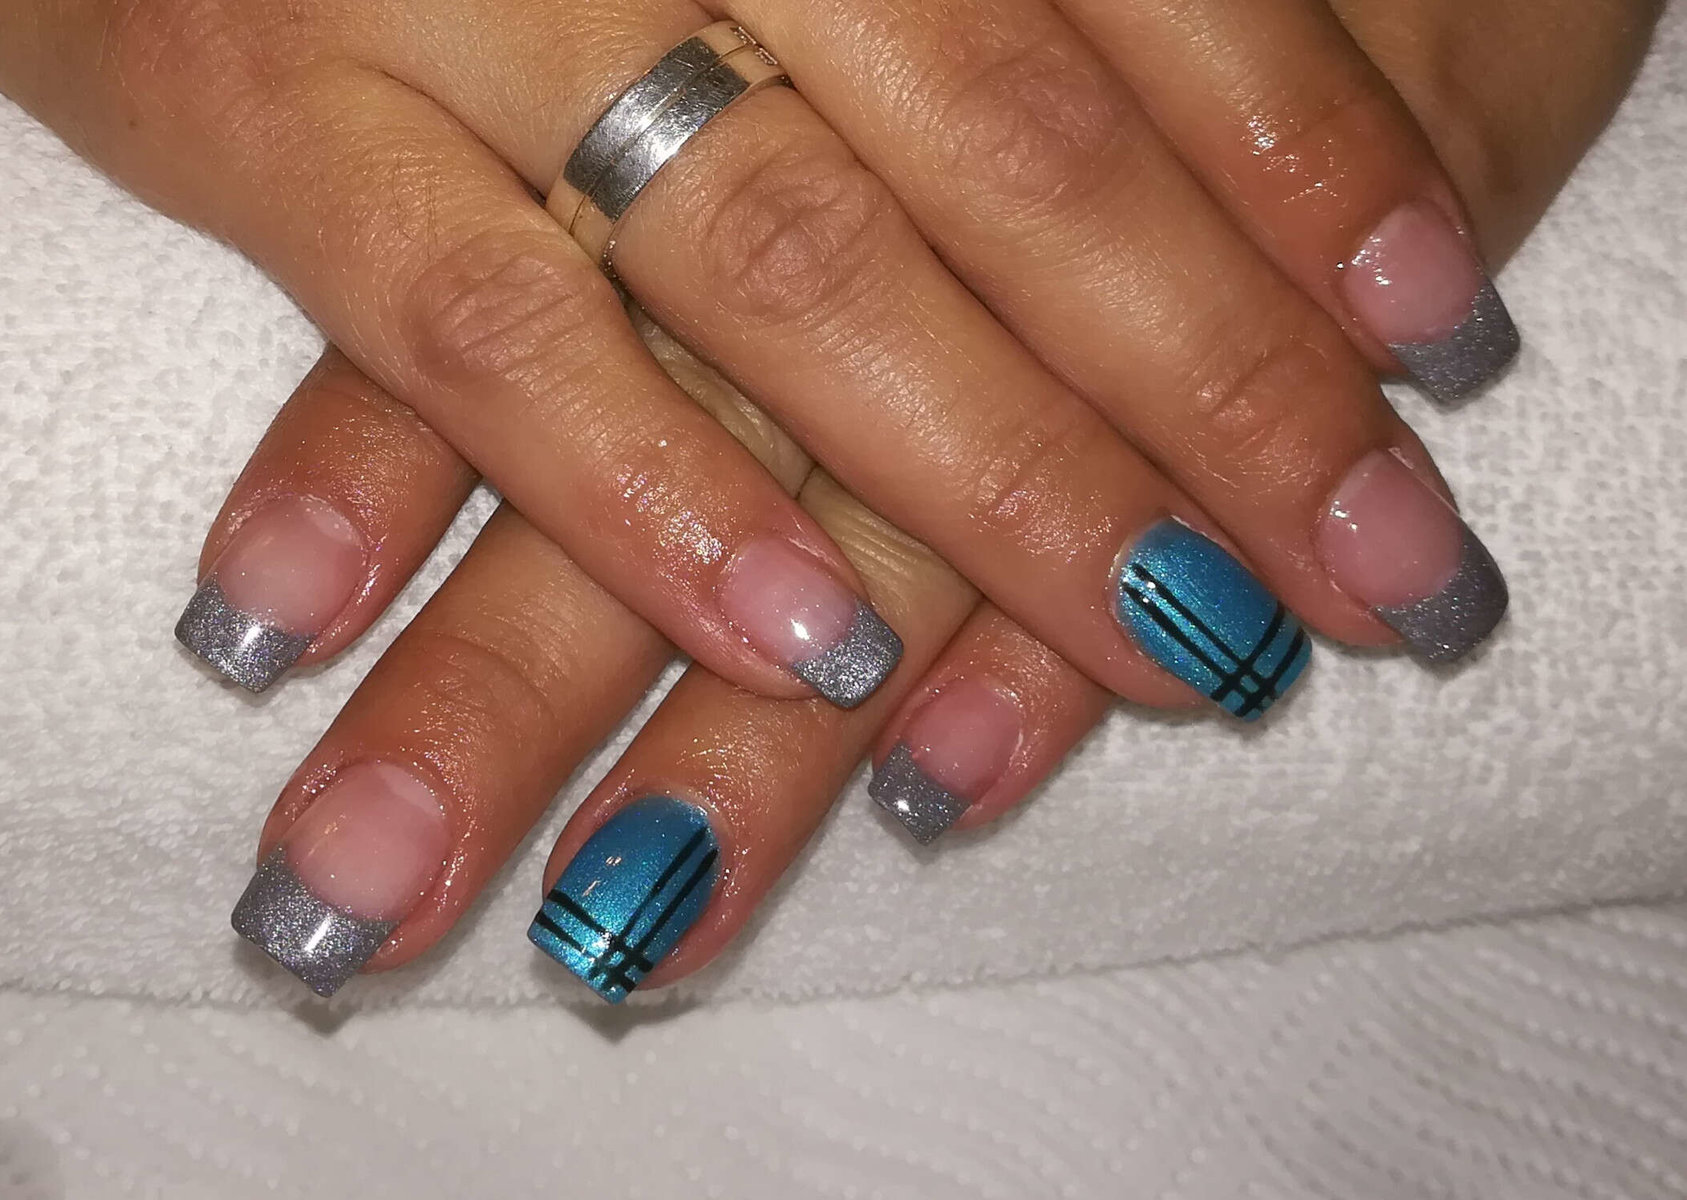 blaues Nageldesign von Melinda's Nails